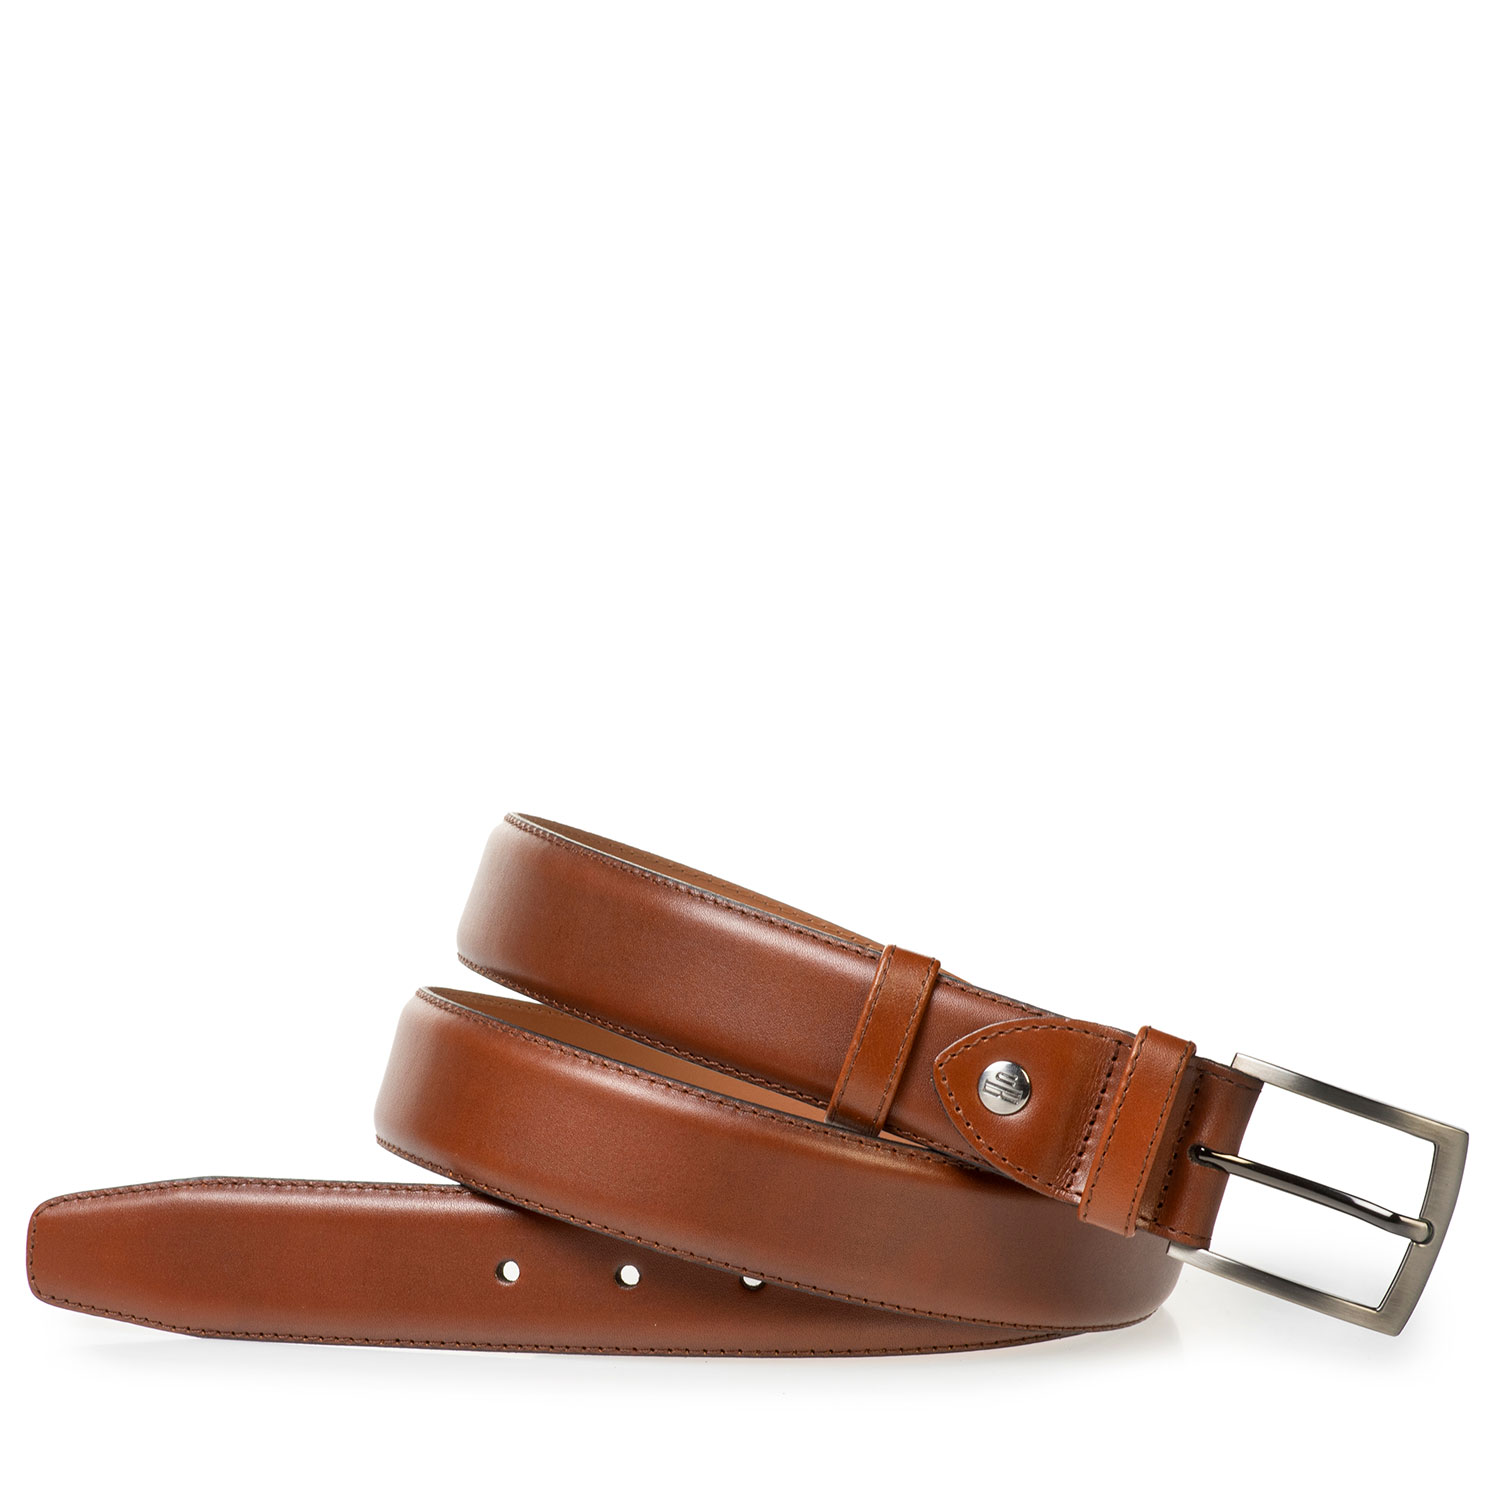 75524/02 - Dark cognac-coloured calf leather belt